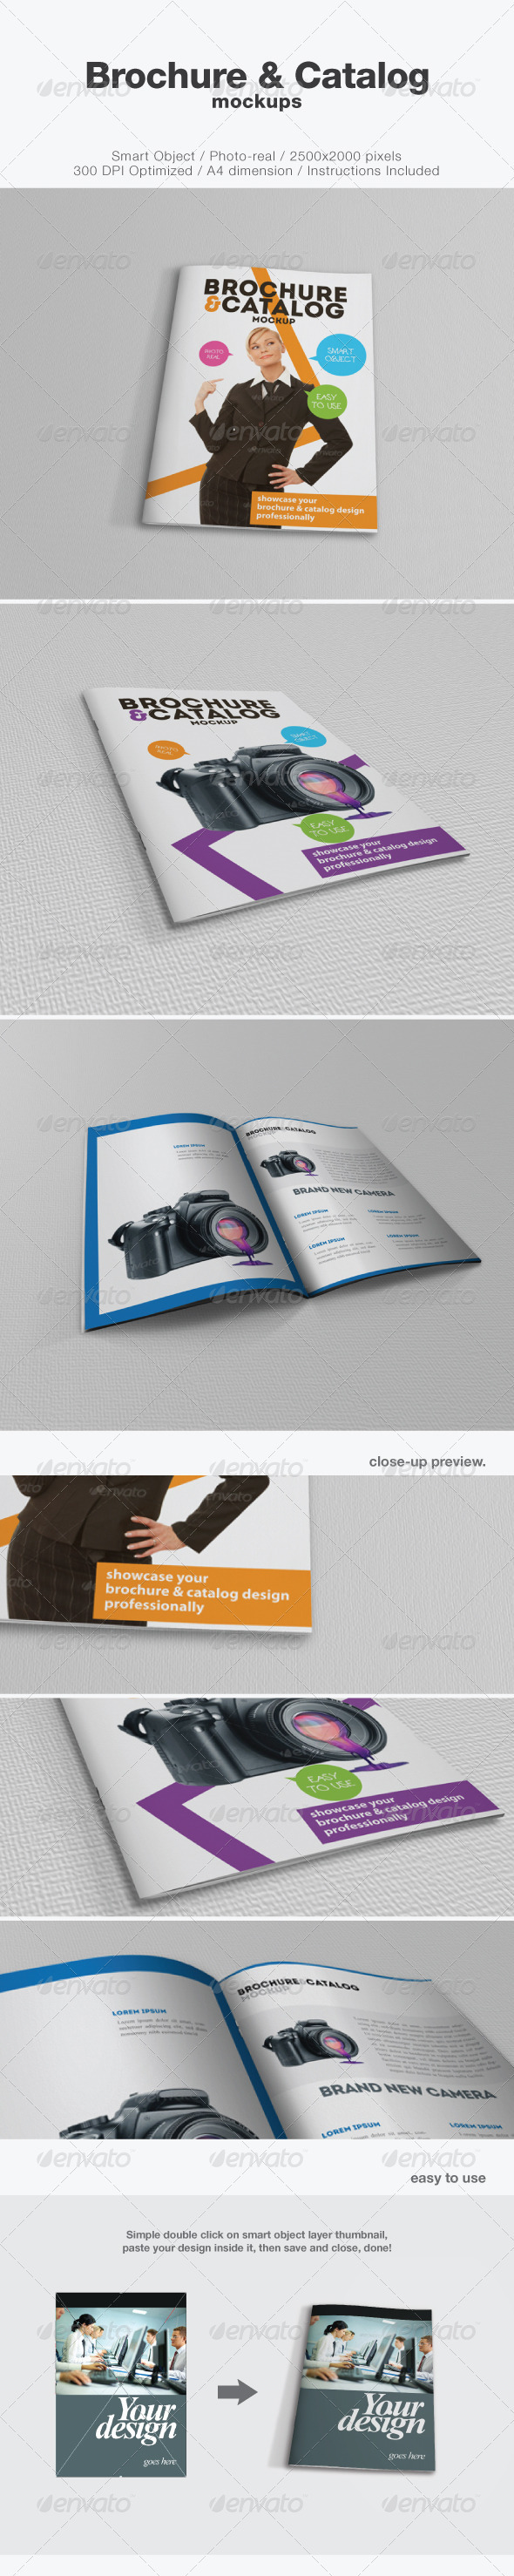 Brochure and Catalog Mockups - Brochures Print